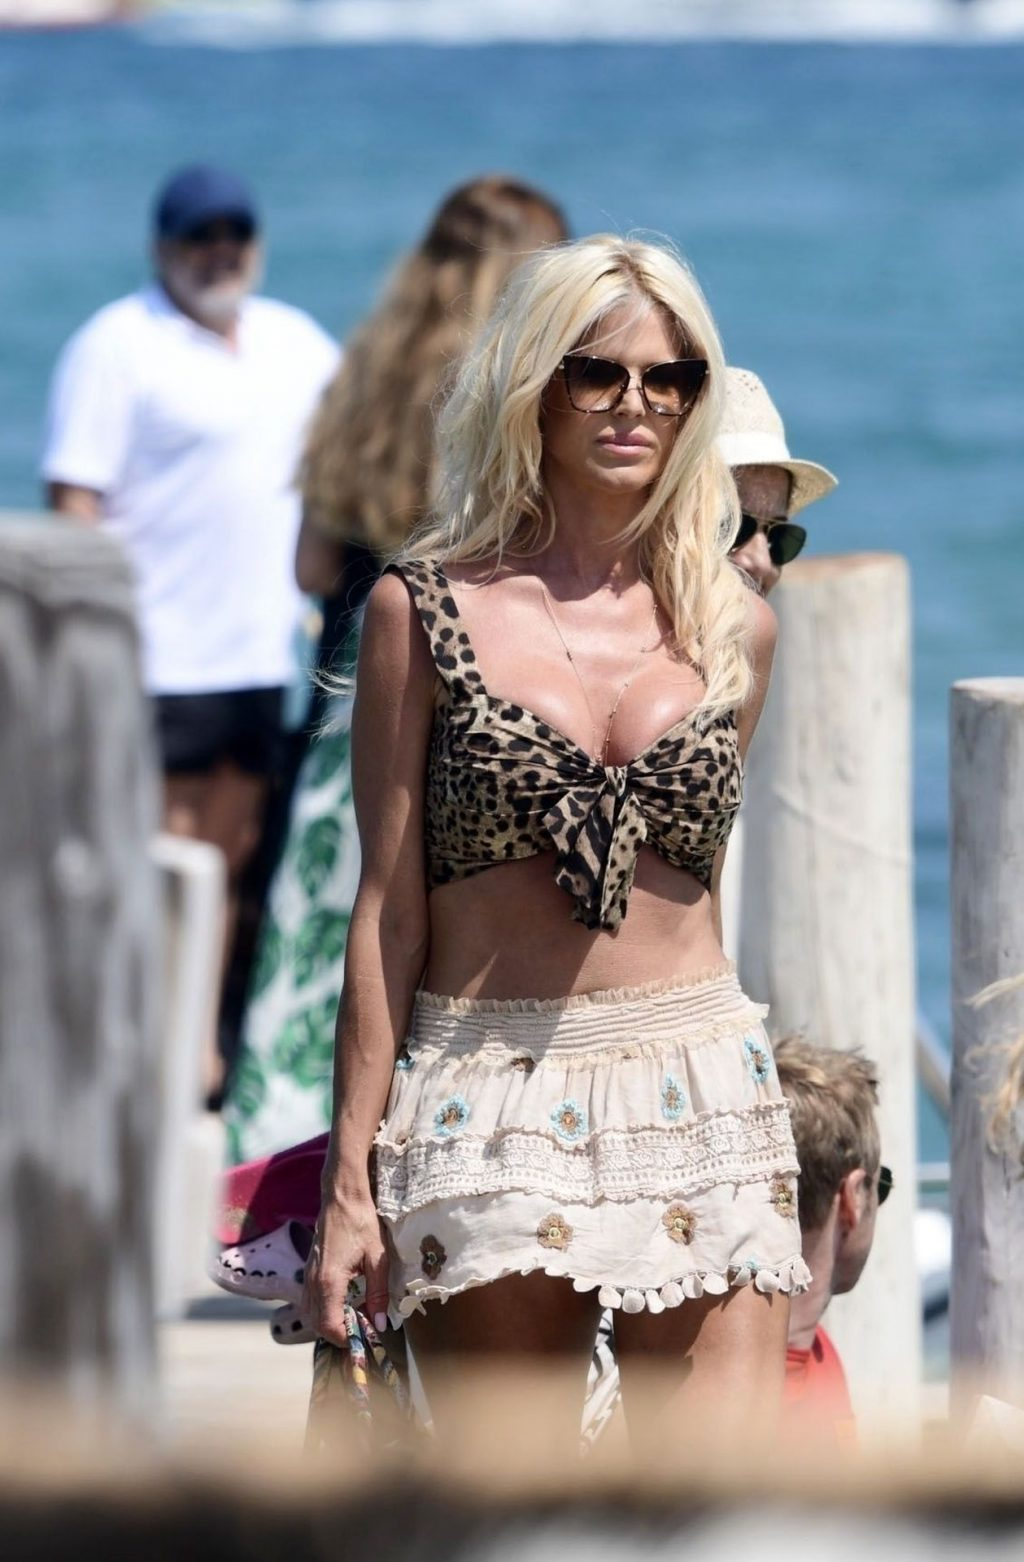 Victoria Silvstedt Is Seen Arriving at Club 55 in St Tropez (30 Photos)